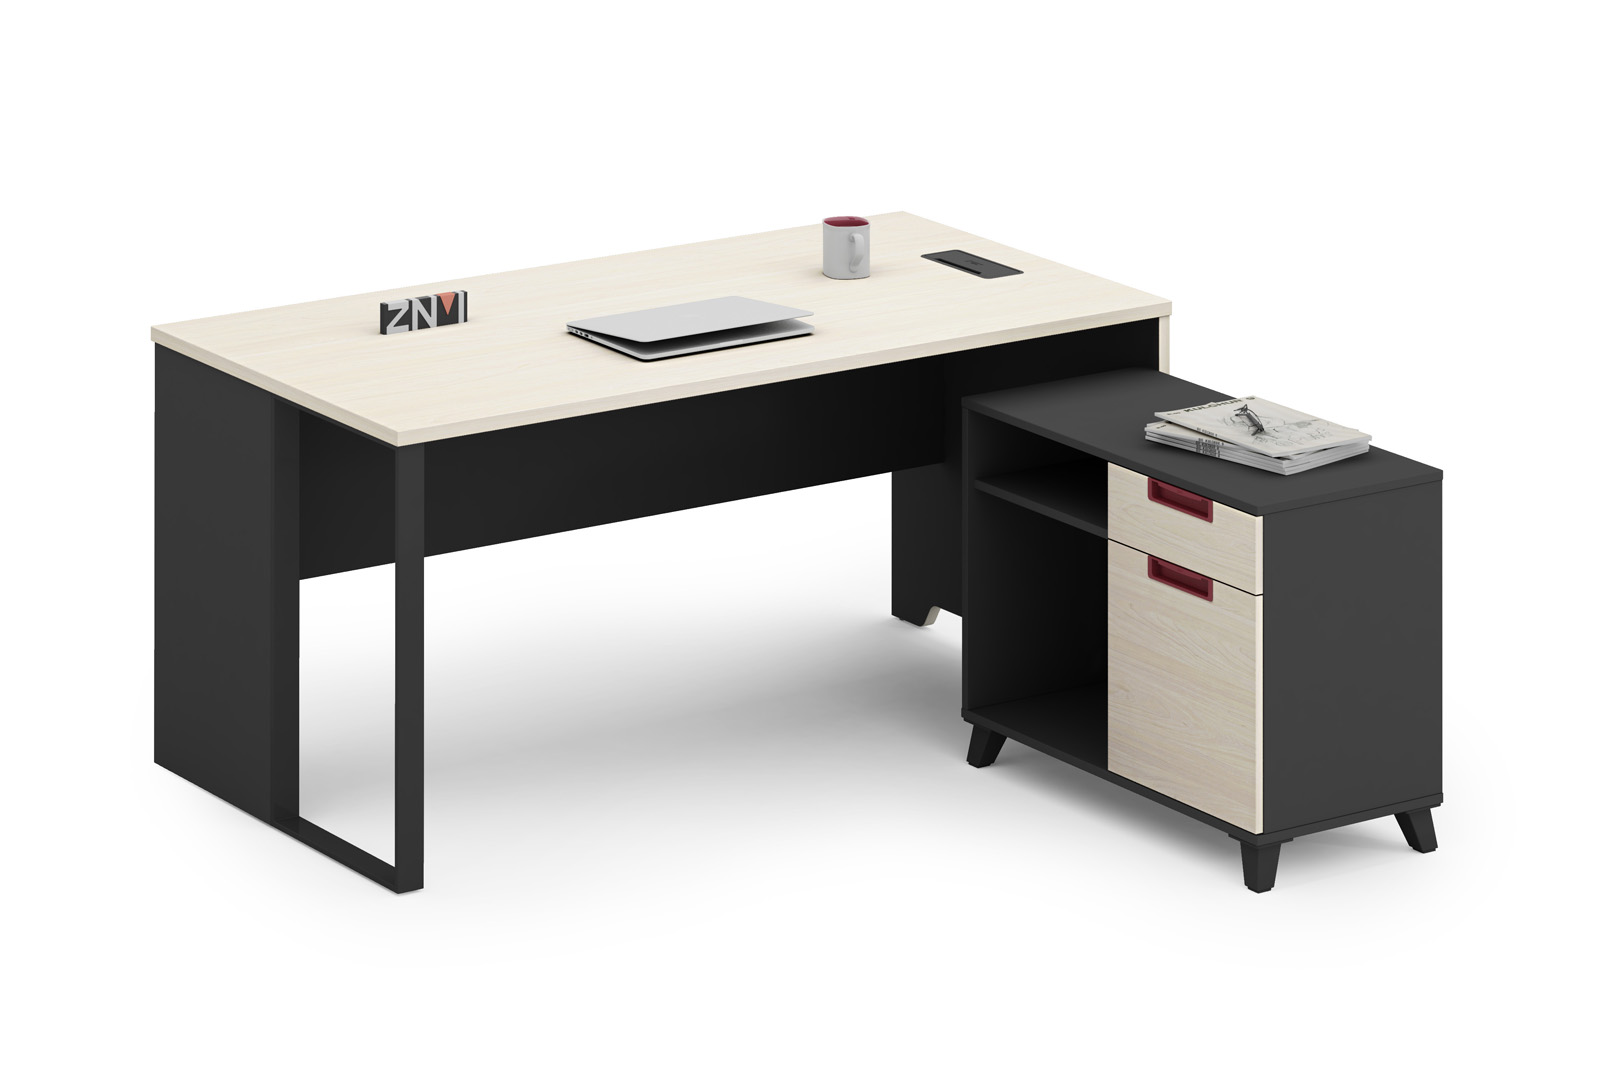 latest BEST OFFICE FURNITURE NEW DESIGN ZNMIS BRAND OFFICE Main TABLE T-DC1406/T-DC1608